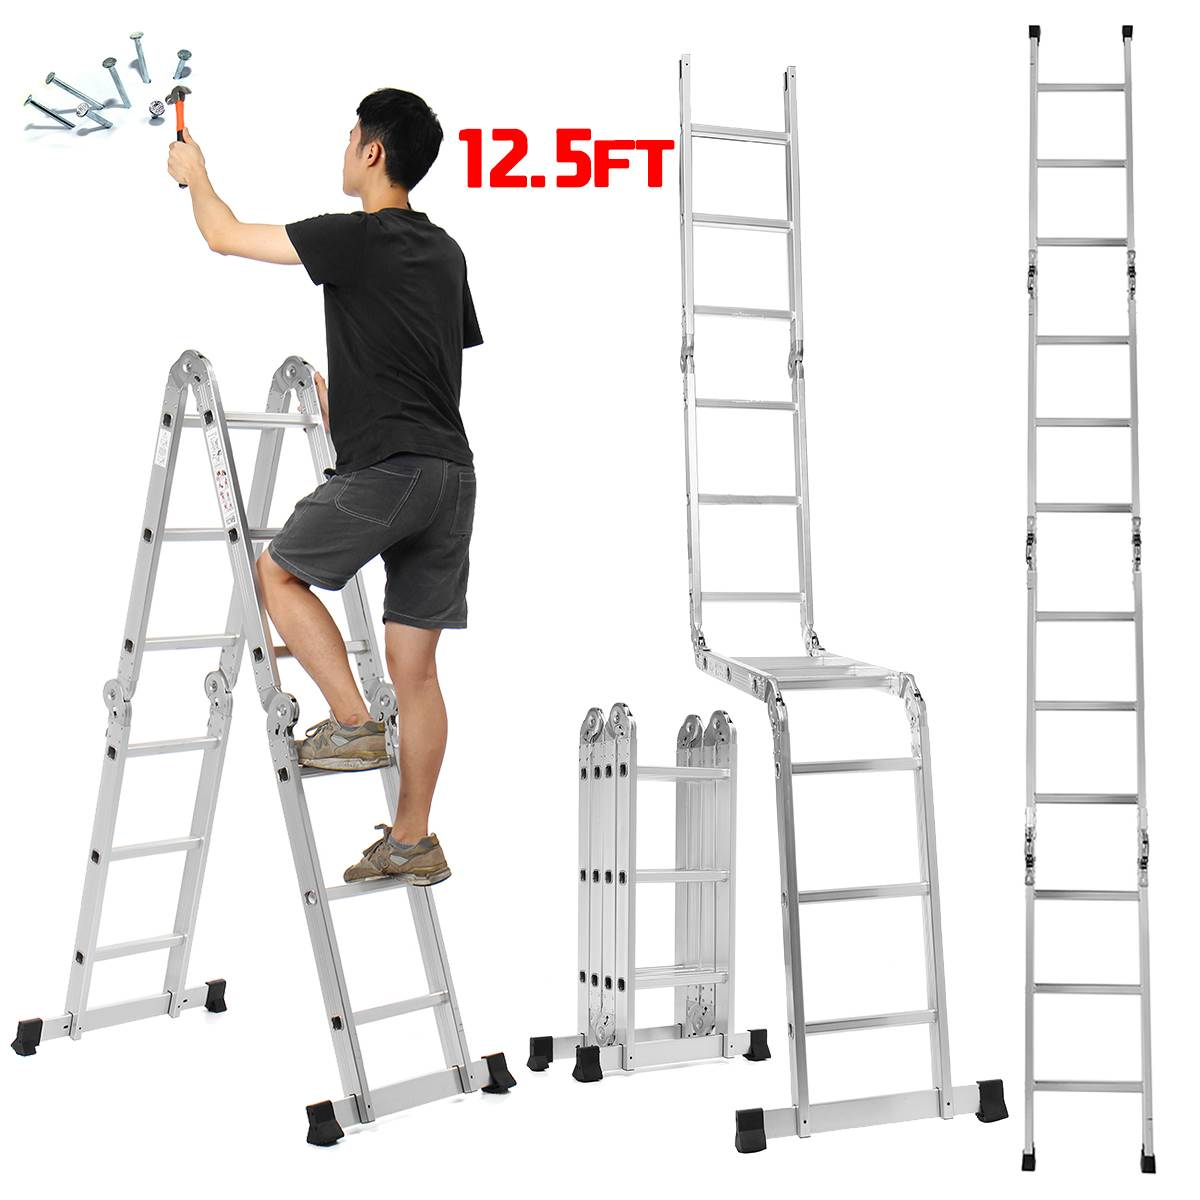 Telescopic Ladder Folding Ladder 3.6m 12.5Ft Aluminum Extension Tall Ladder Multifunctional Single Extension Ladder Tool